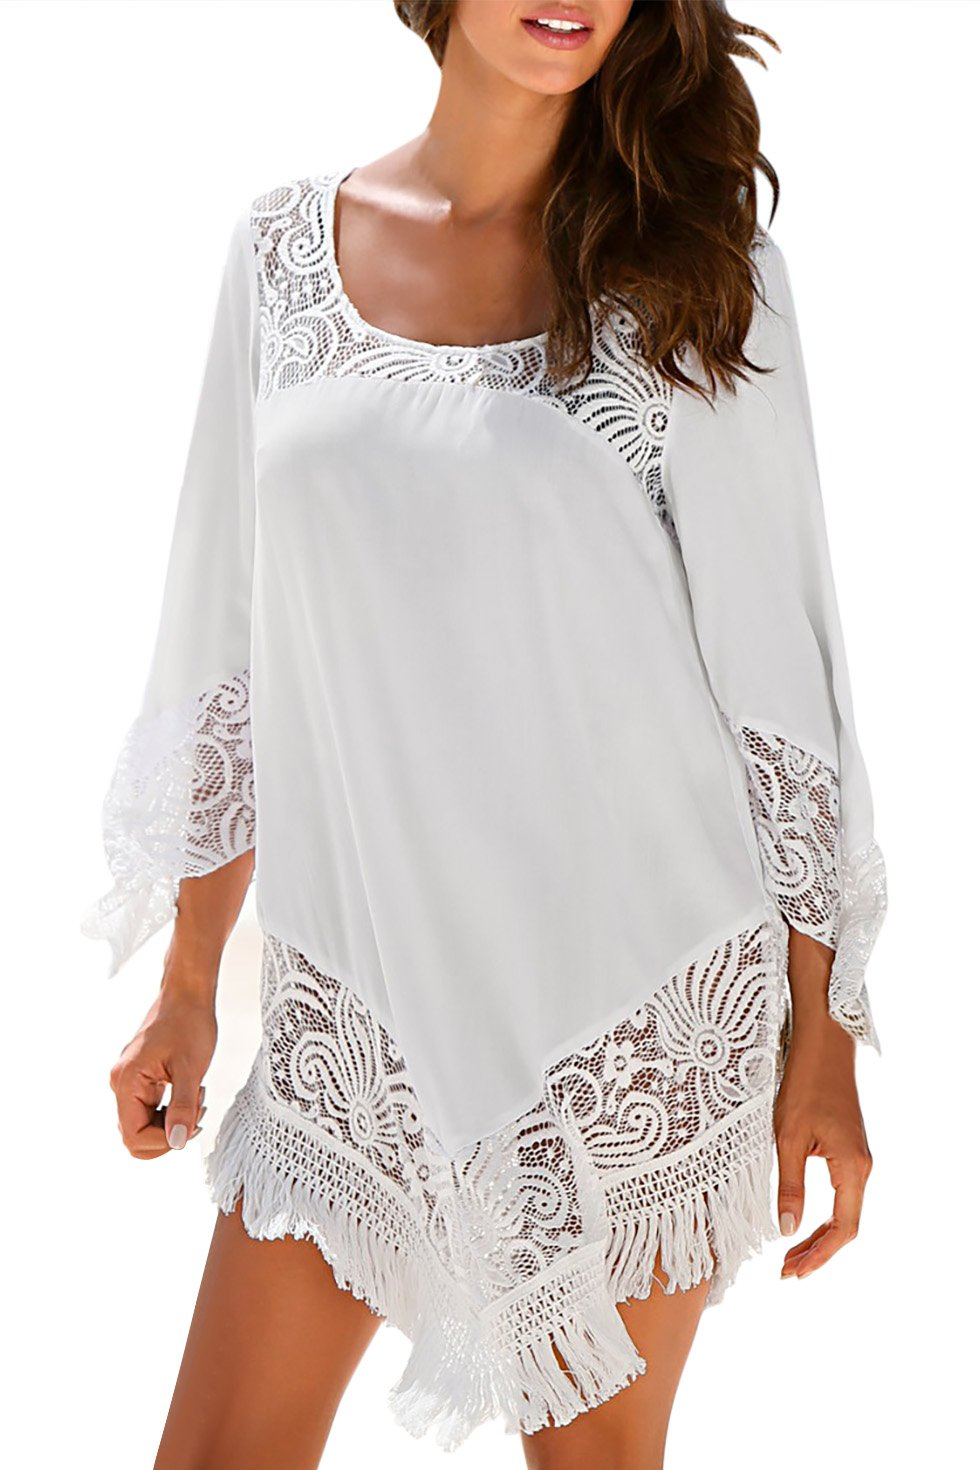 SUNNOW Women Simple Style Sexy Oversize Lace Bikini Cover Up Beach Blouse (one Size, White)